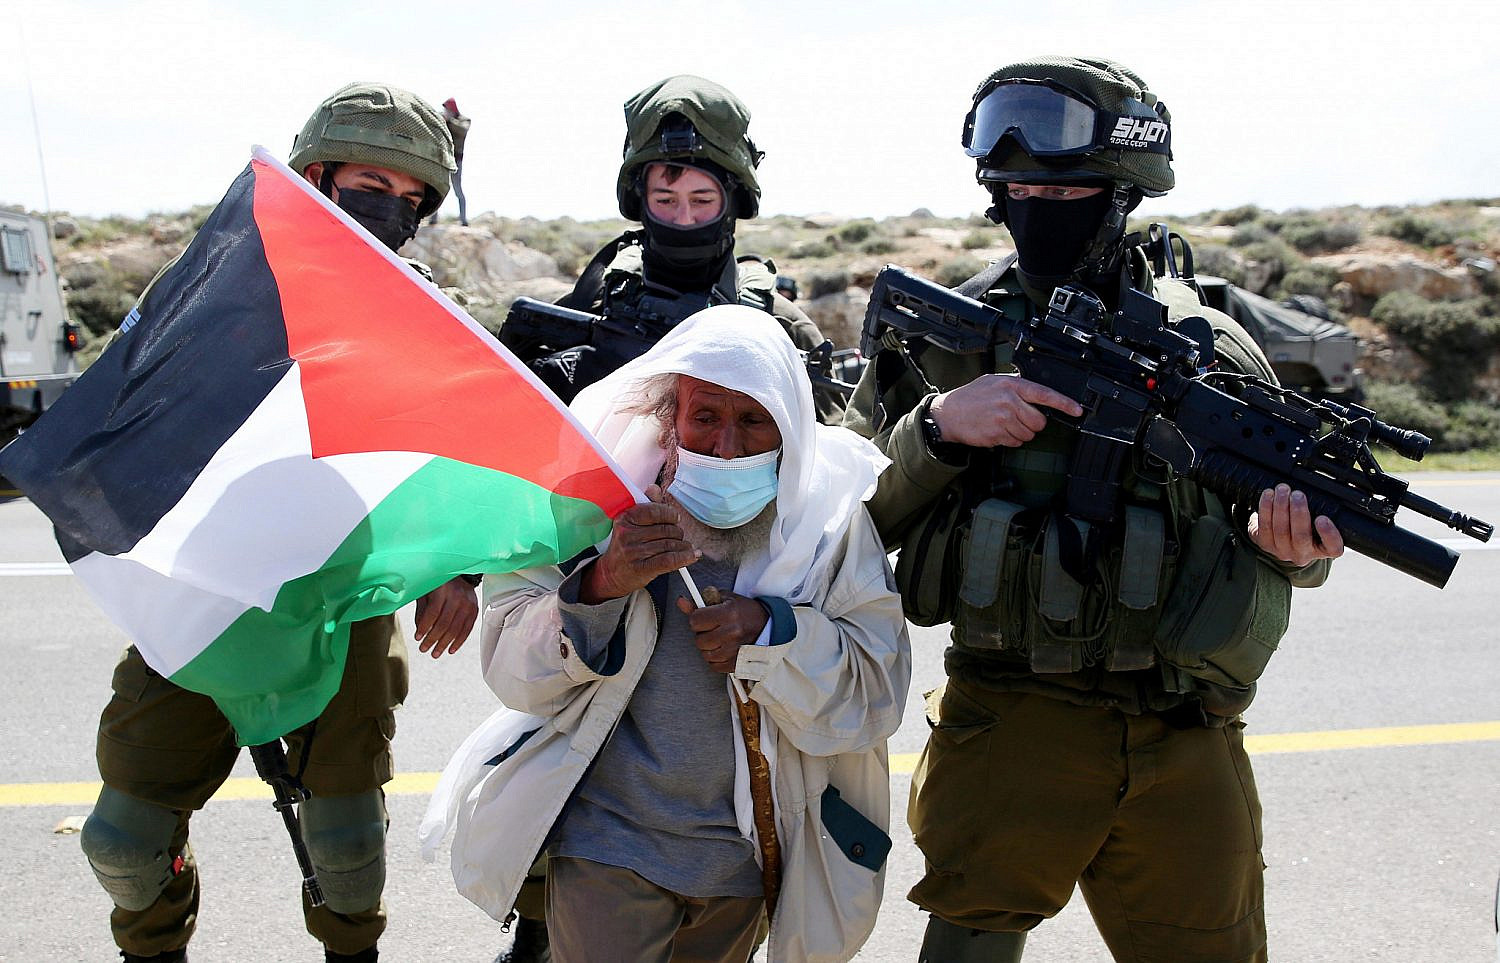 A Palestinian protester surrounded by Israeli soldiers during a protest against Israeli settlement building near the West Bank town of Yatta, near Hebron, March 12, 2021. (Wissam Hashlamon/Flash90)